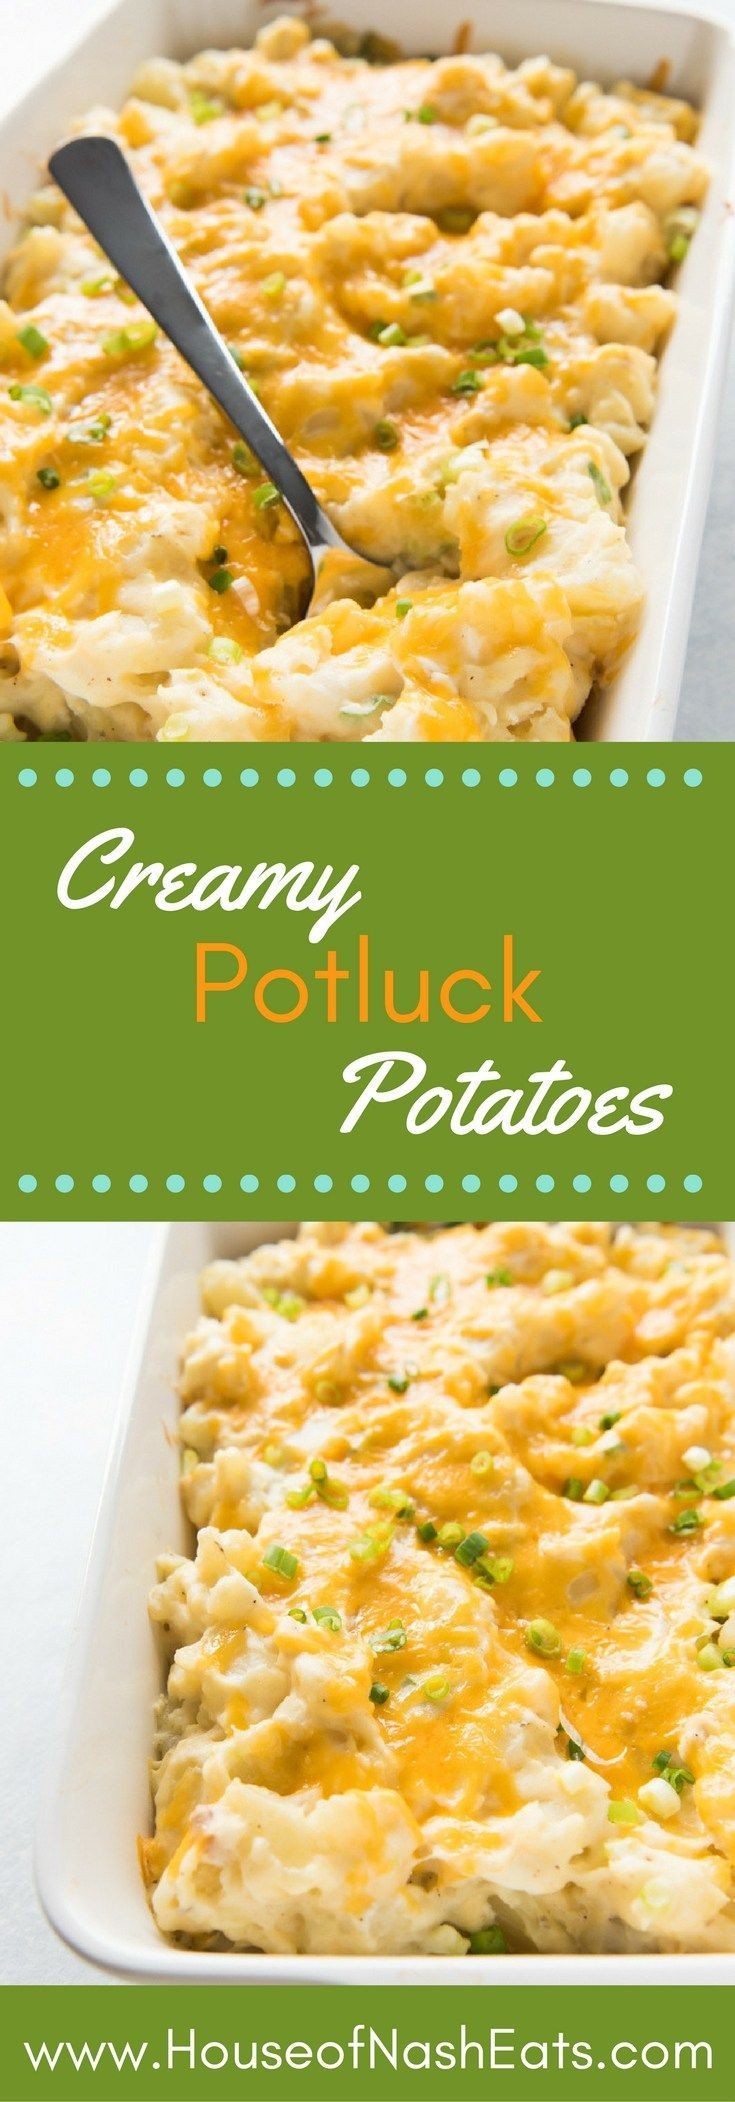 best pot luck ideas images on pinterest kitchens savory snacks